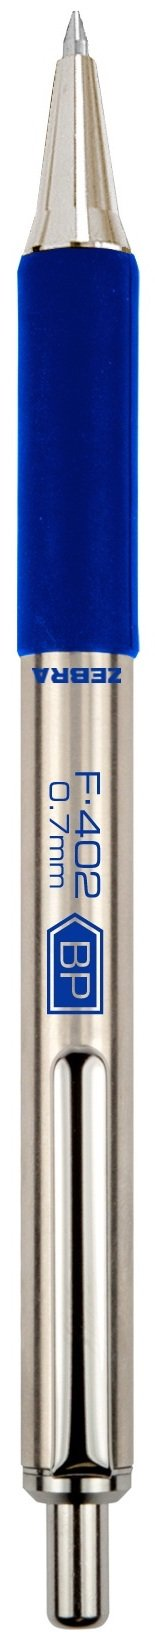 Zebra F-402 Ballpoint Stainless Steel Retractable Pen, Fine Point, 0.7mm, Blue Ink, 12-Count by Zebra Pen (Image #2)